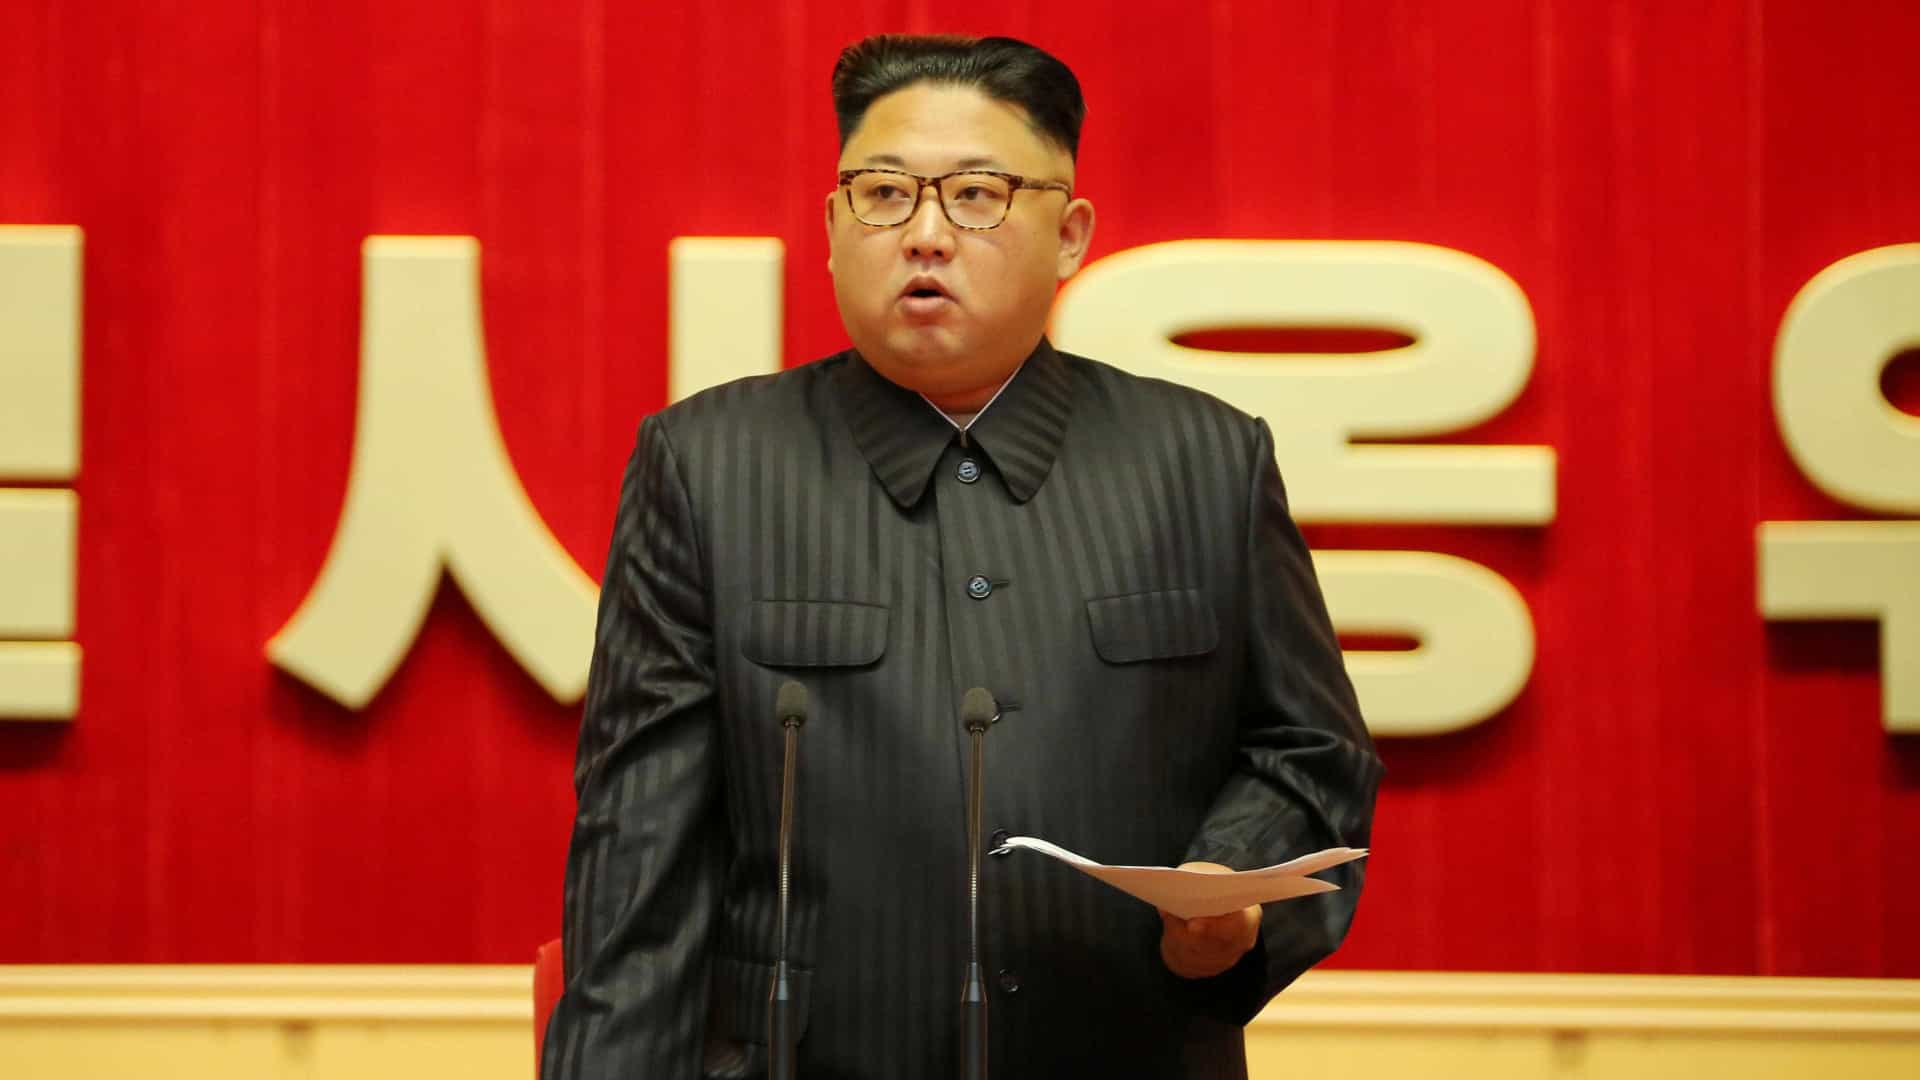 Coreia do Norte suspende diálogo com a Coreia do Sul